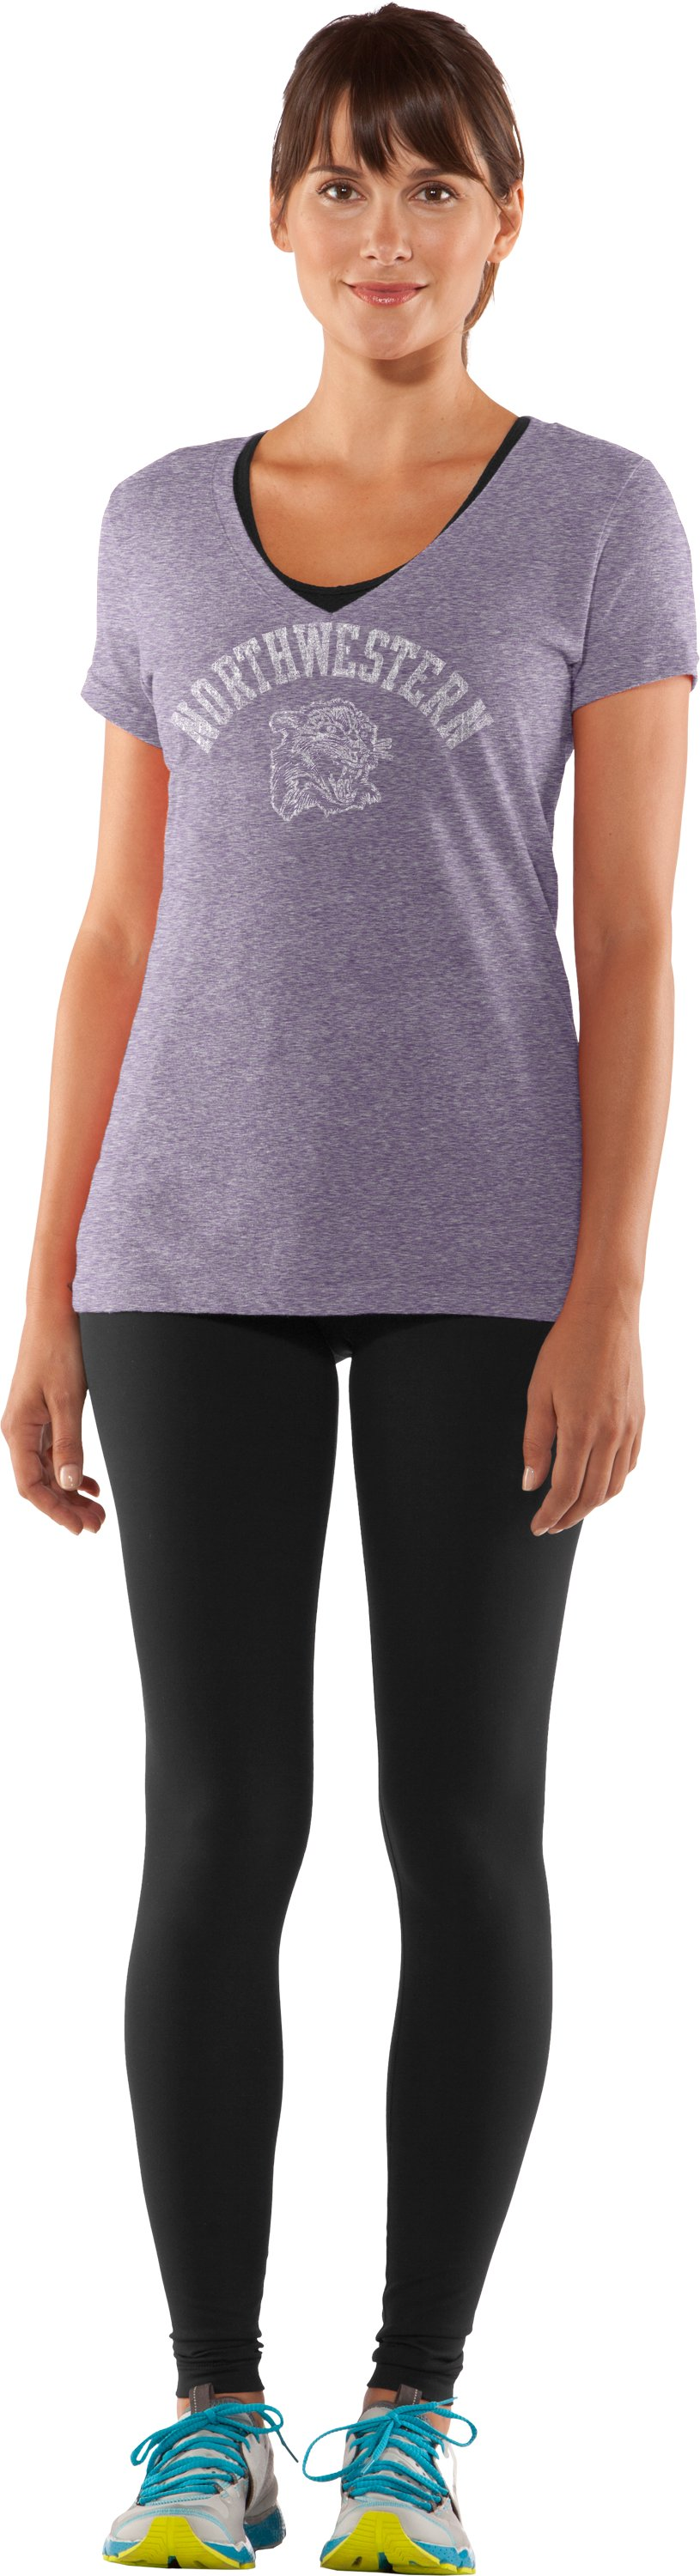 Women's Northwestern Under Armour® Legacy T-Shirt, Purple